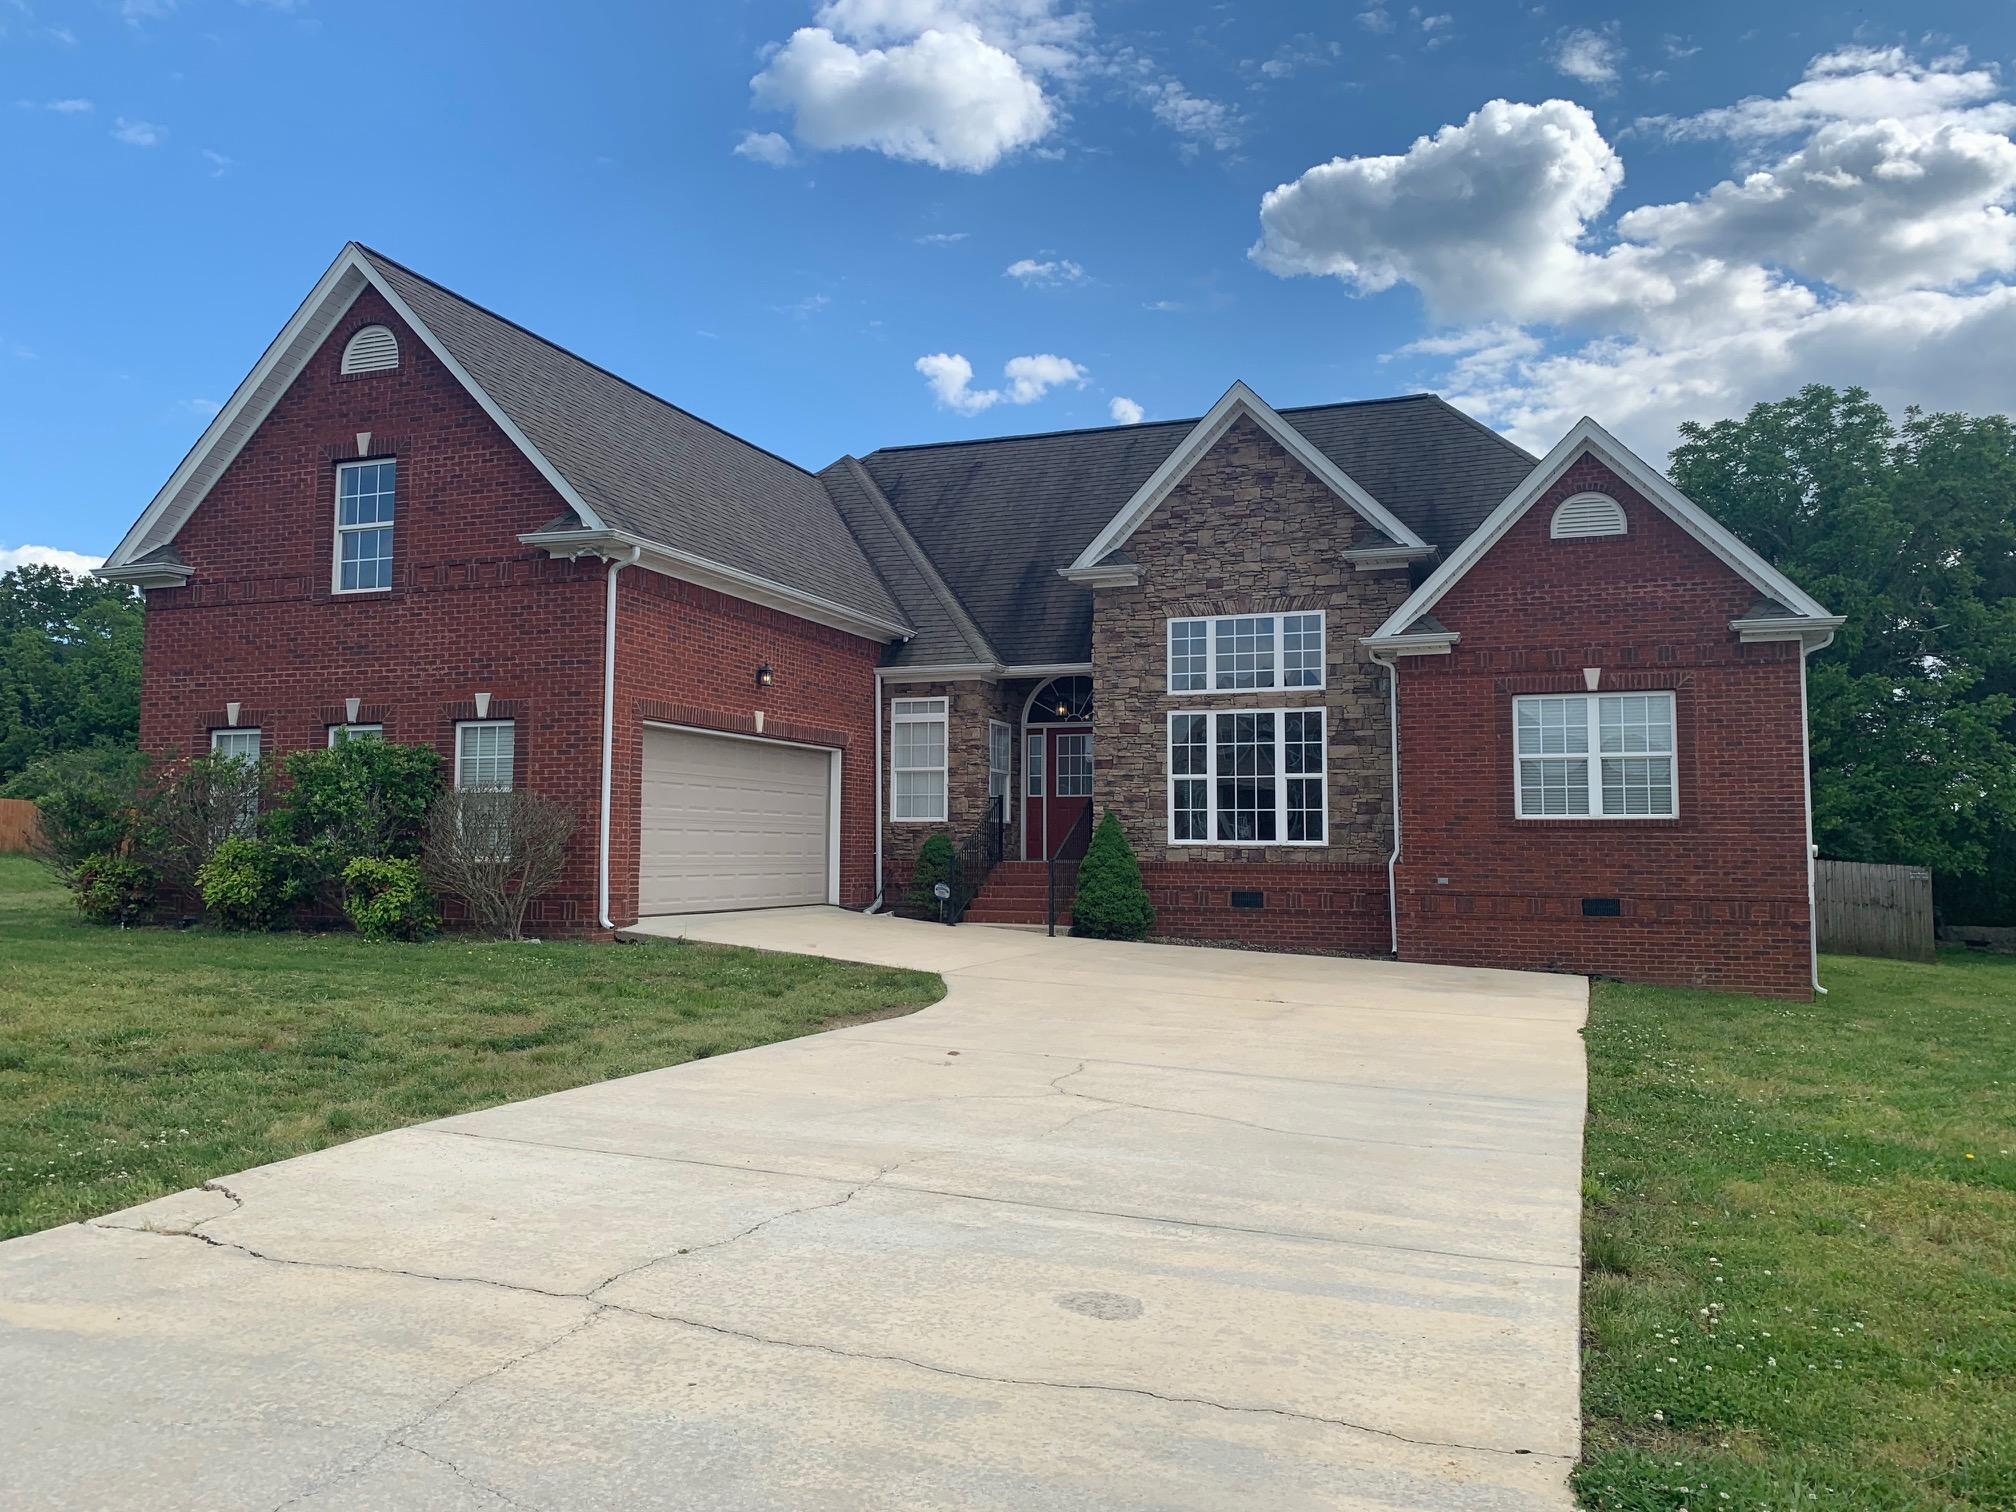 7459 Nightfall Cir, Ooltewah, TN 37363